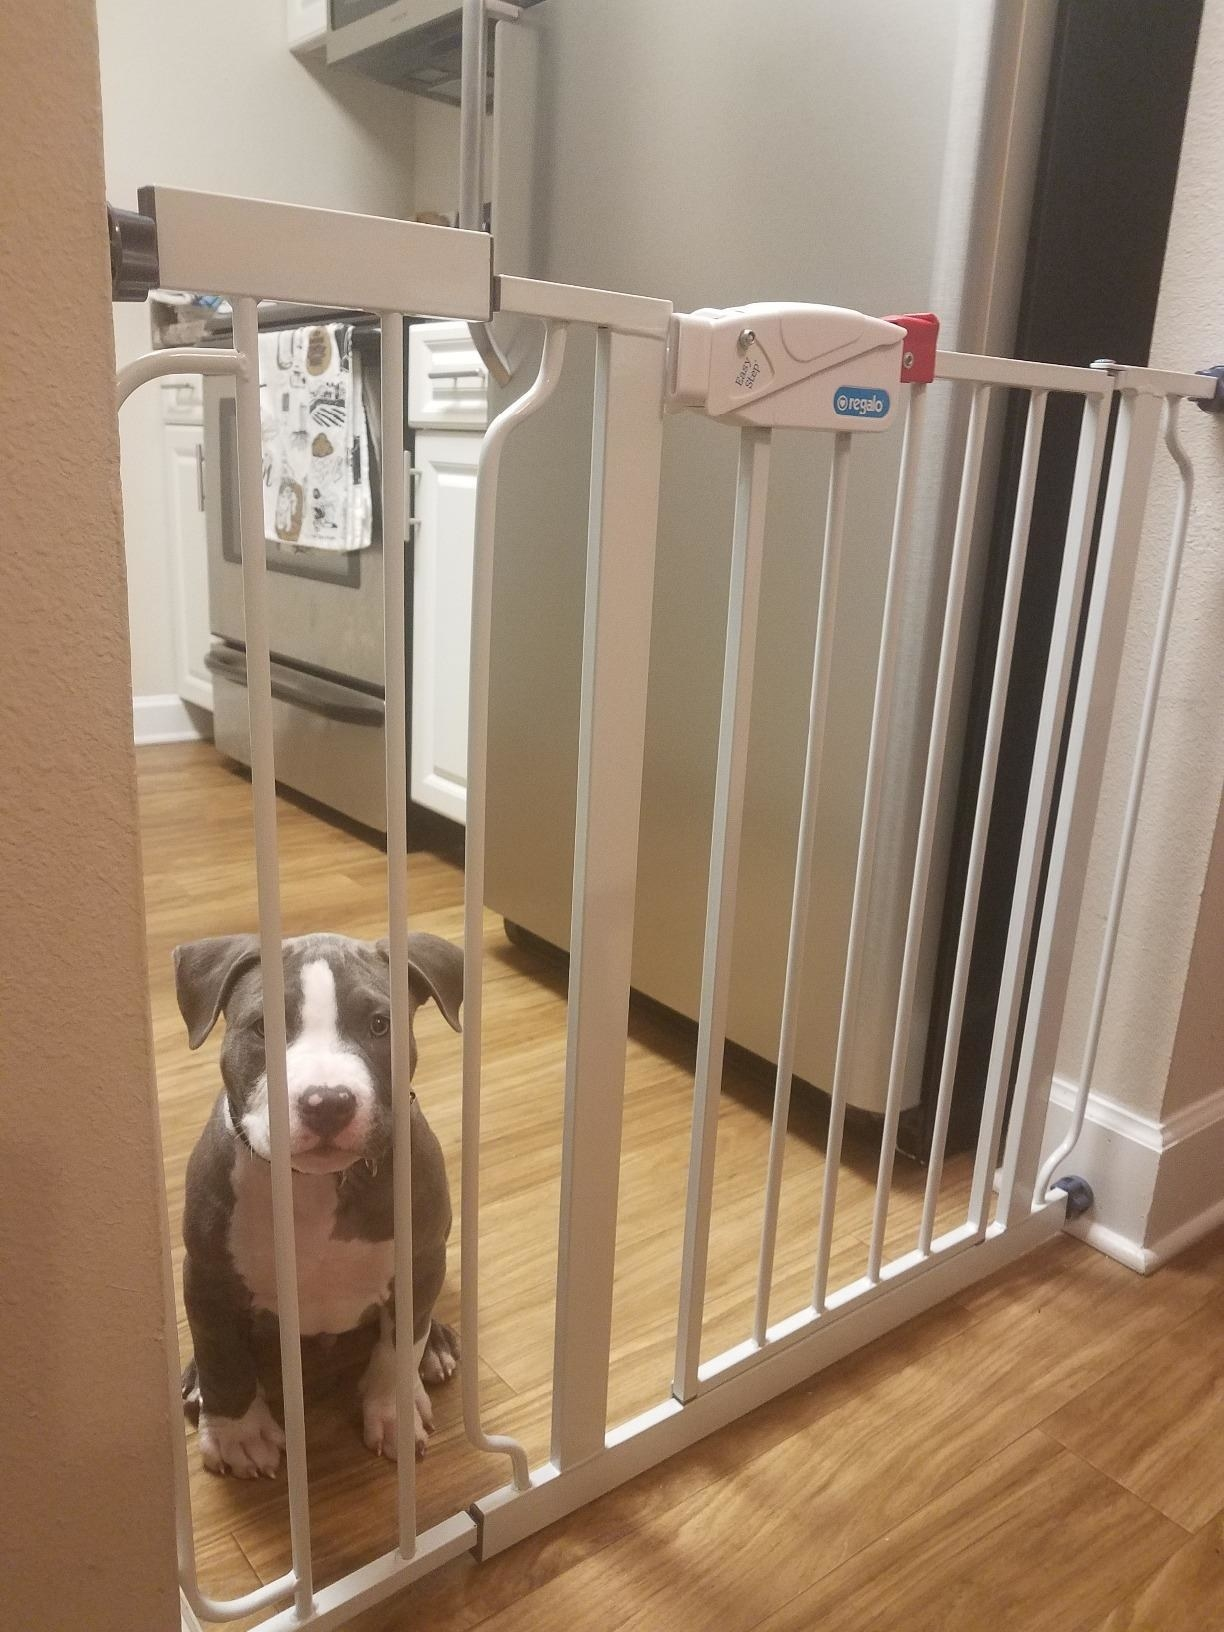 A puppy behind the baby gate